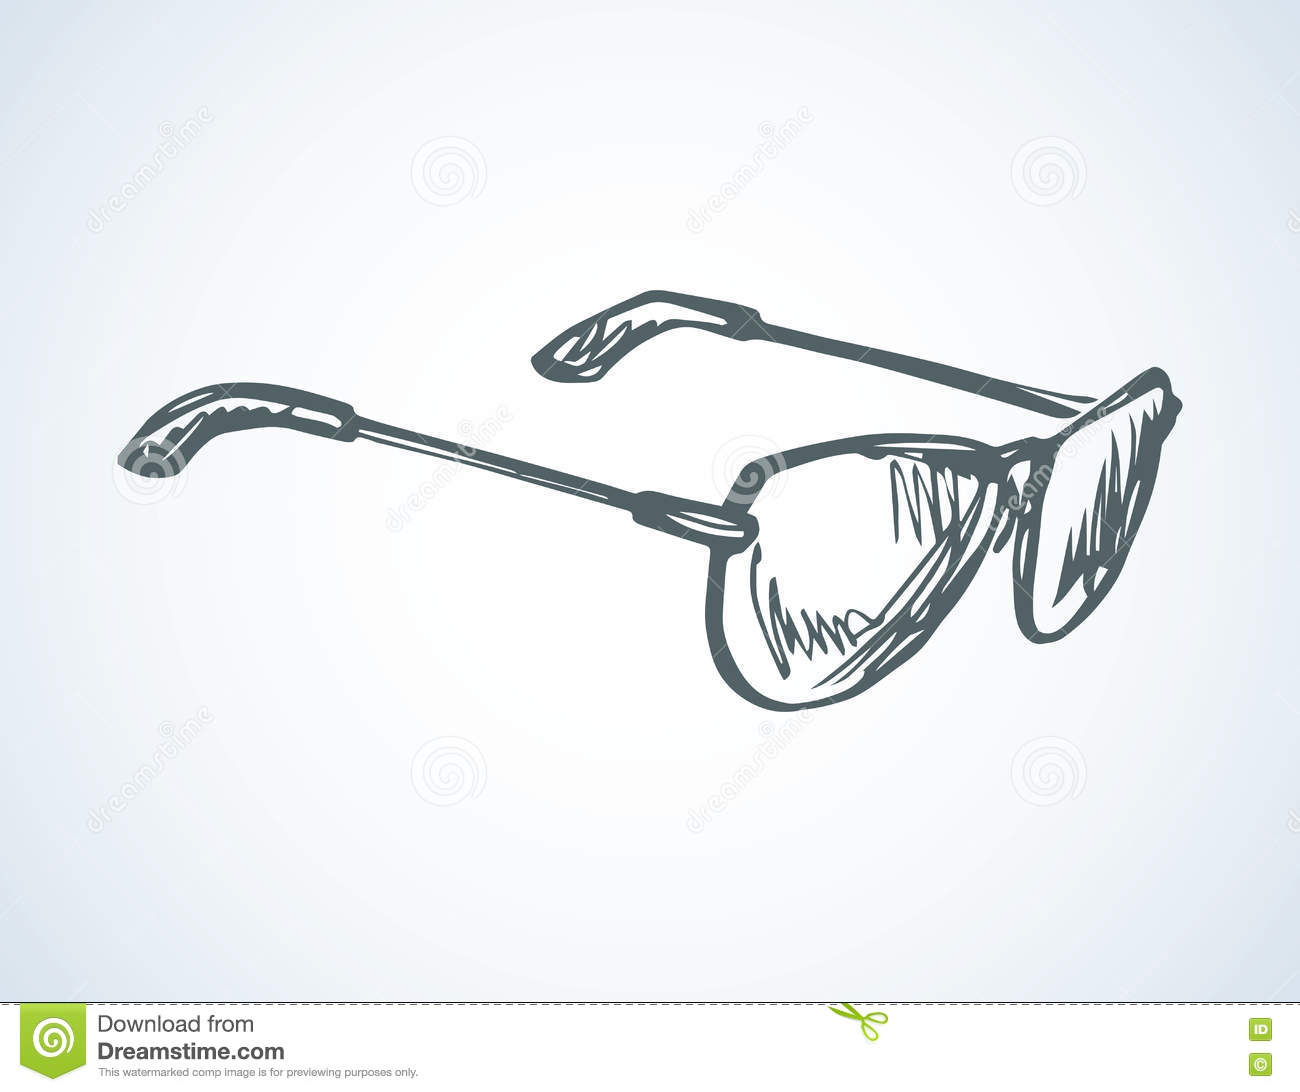 52fa9b2b74 New protective polarized eyewear isolated on white backdrop. Freehand  outline ink hand drawn picture sign sketchy in art scribble retro style pen  on paper.